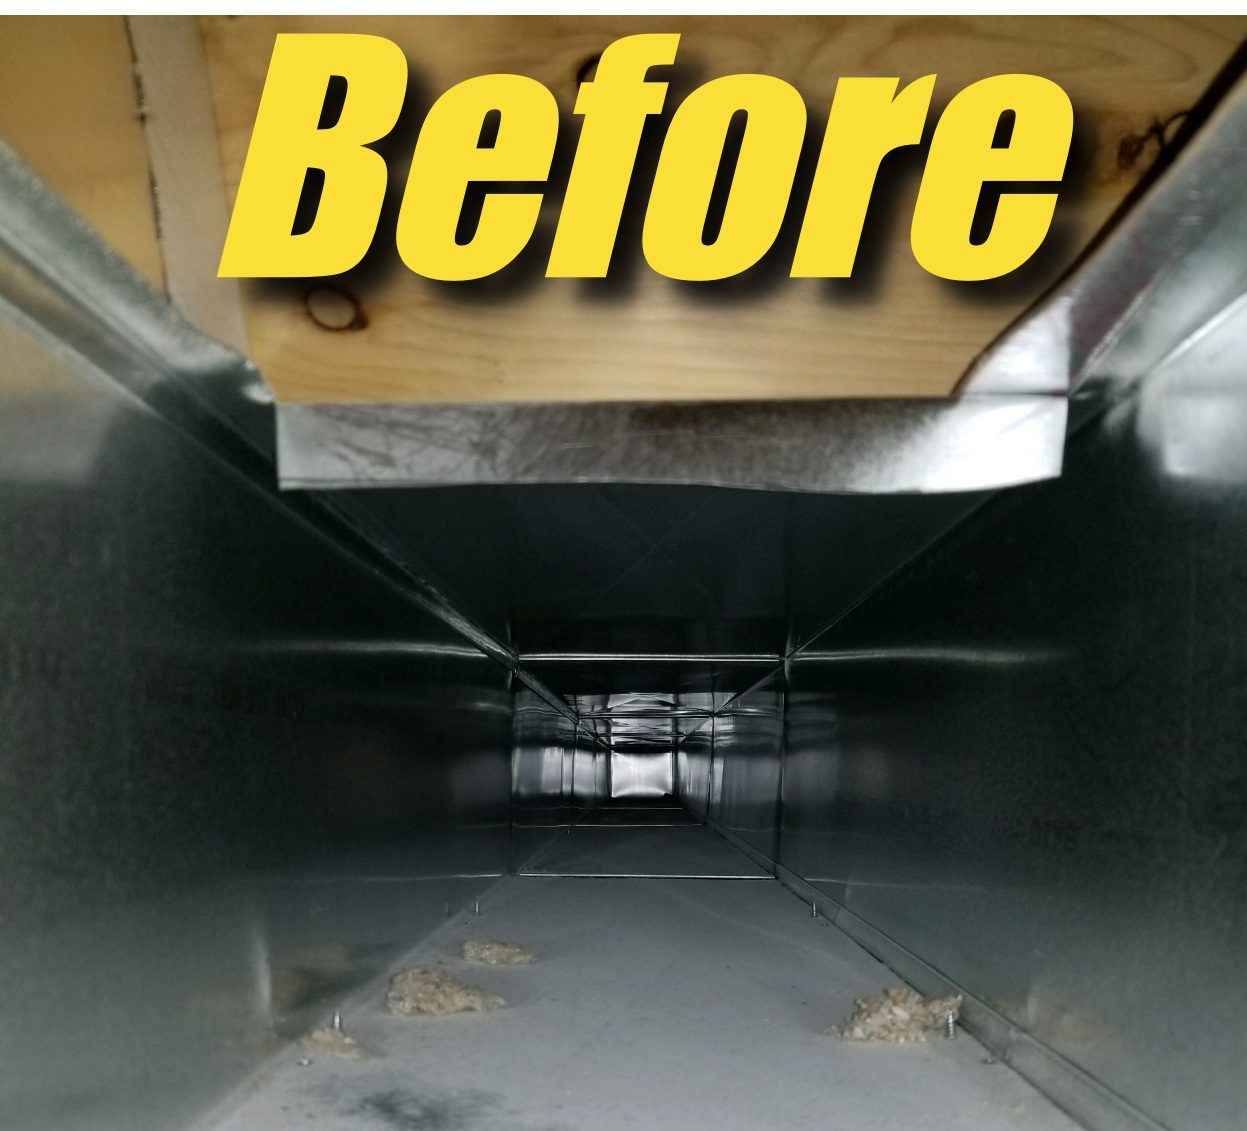 The owner showed before/after pictures to see all the drywall, construction and pet debris in our ducts and how it looked after cleaning.  Thank you for the clean air!